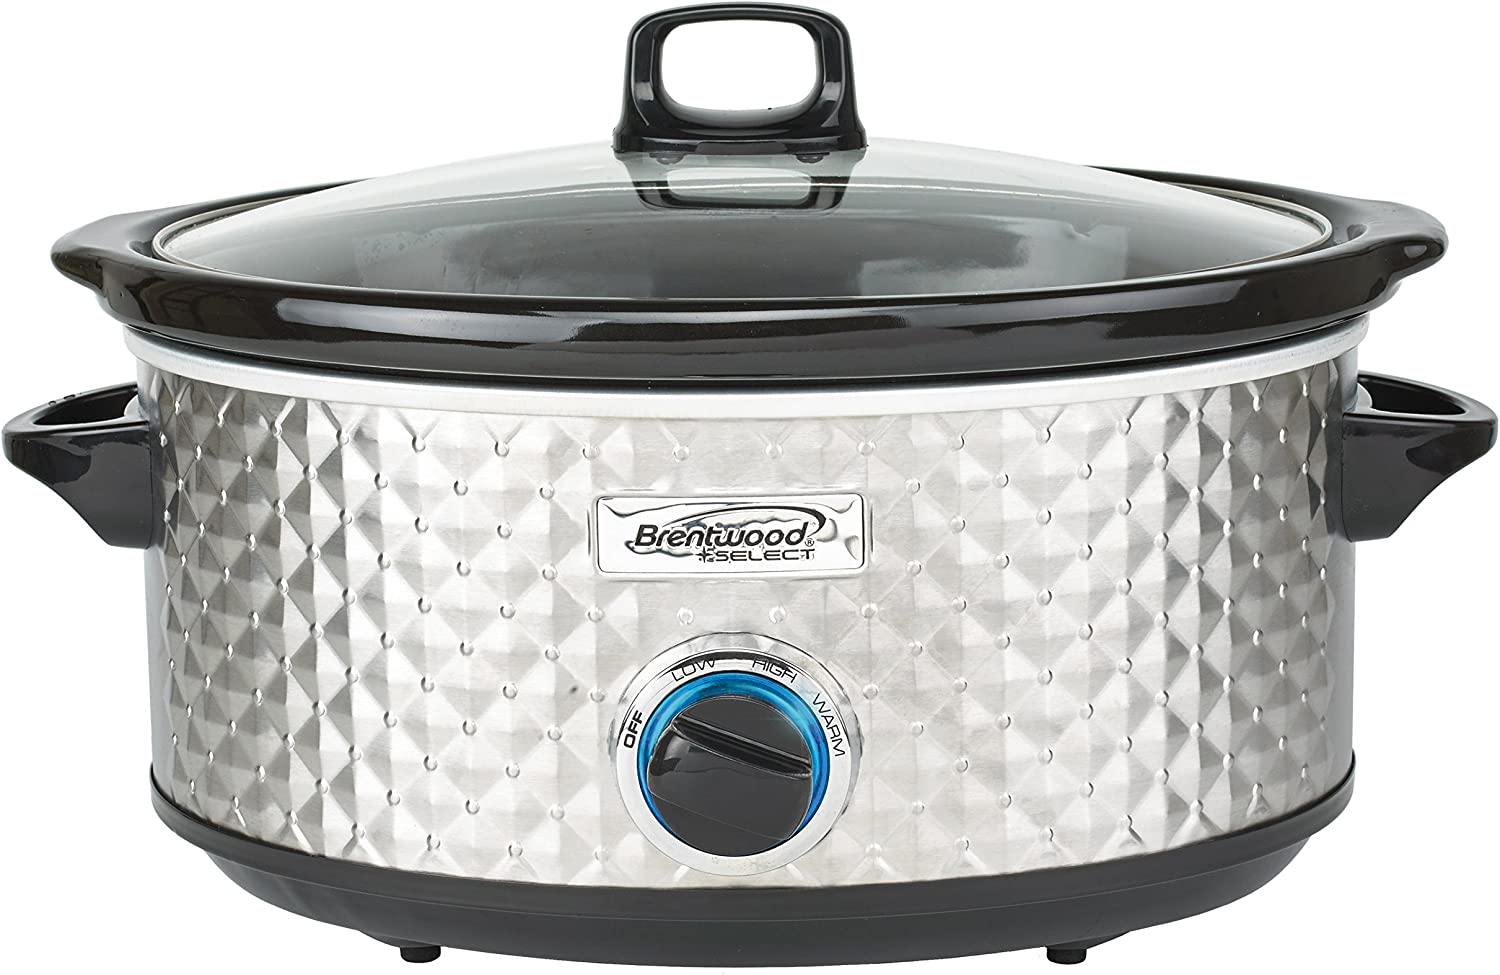 Brentwood Select SC-157S Slow Cooker, 7 Quart, Silver